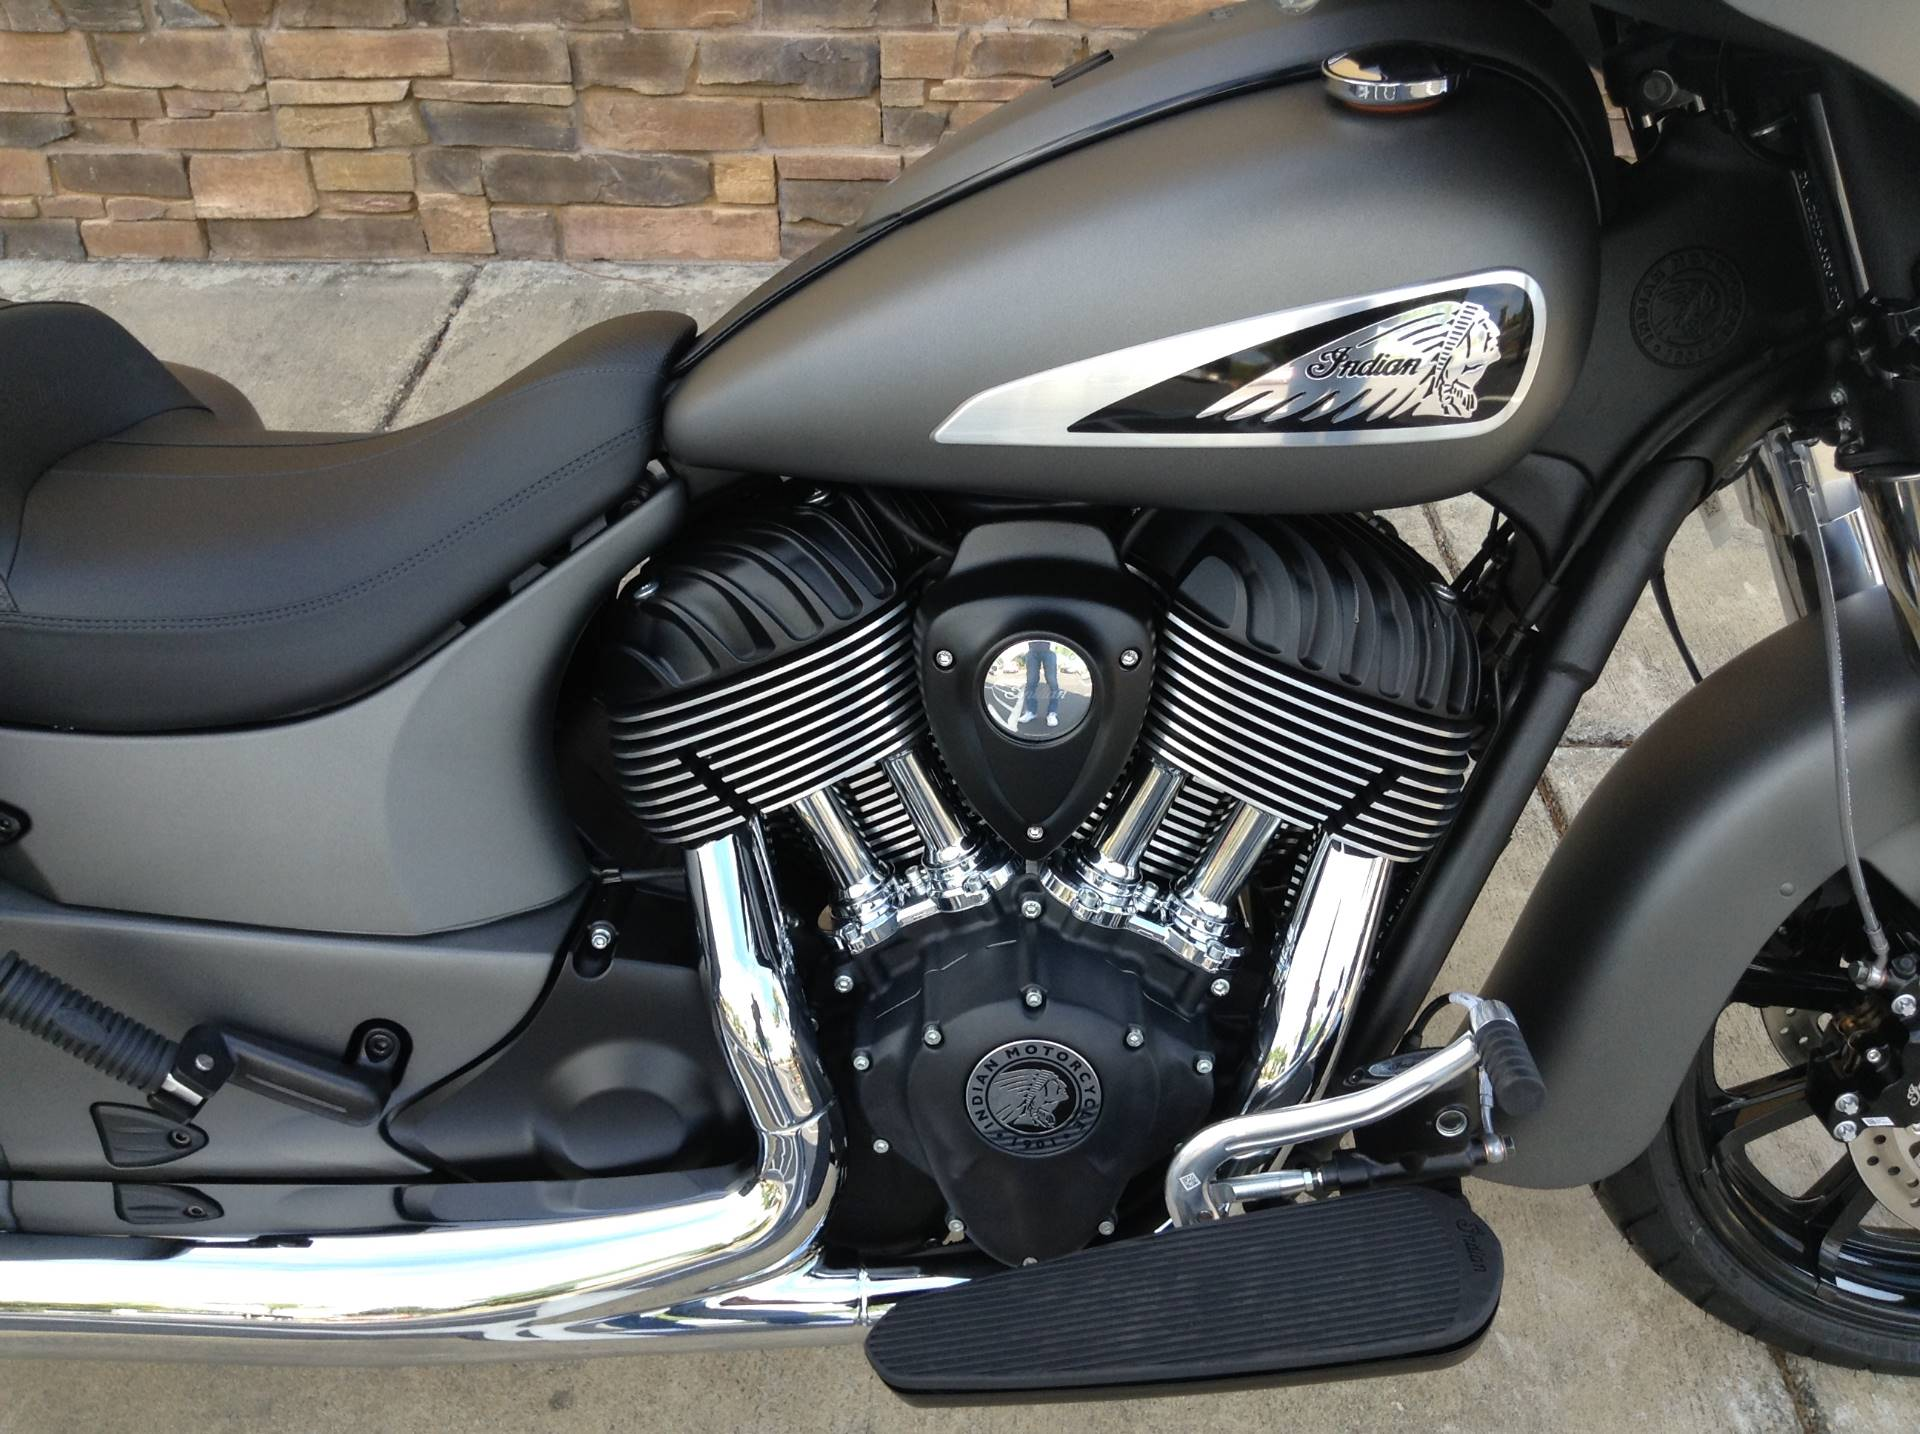 2020 Indian CHIEFTAIN in Panama City Beach, Florida - Photo 10